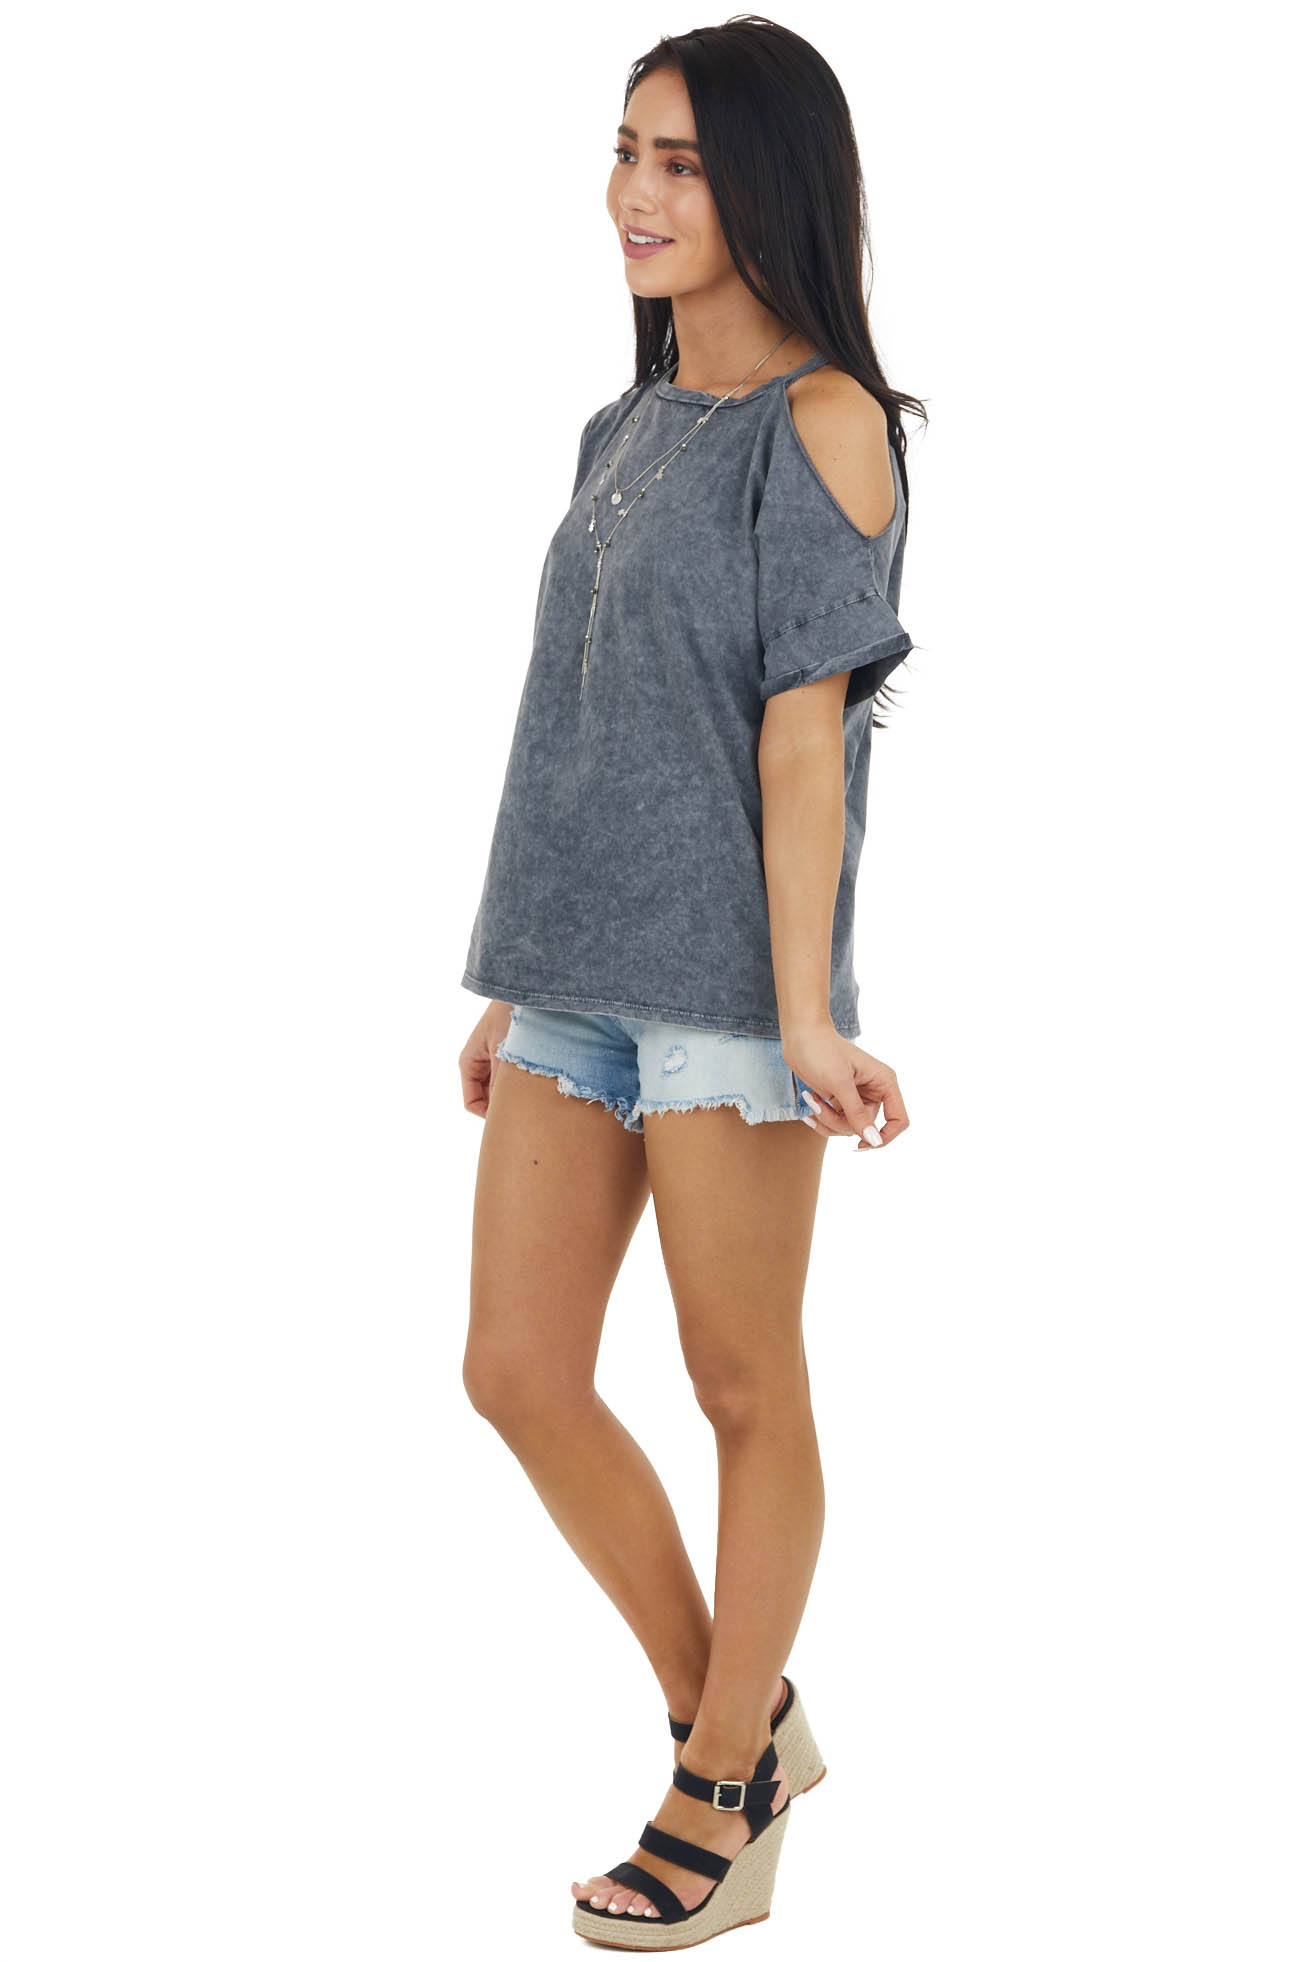 Graphite Mineral Washed Short Sleeve Cold Shoulder Knit Tee